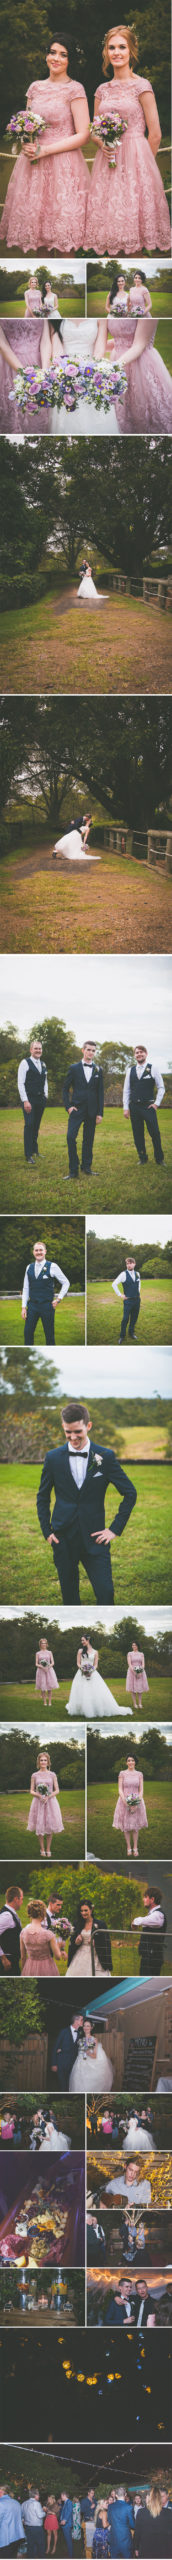 Bel Amour Wedding Photography Josh and Gemma